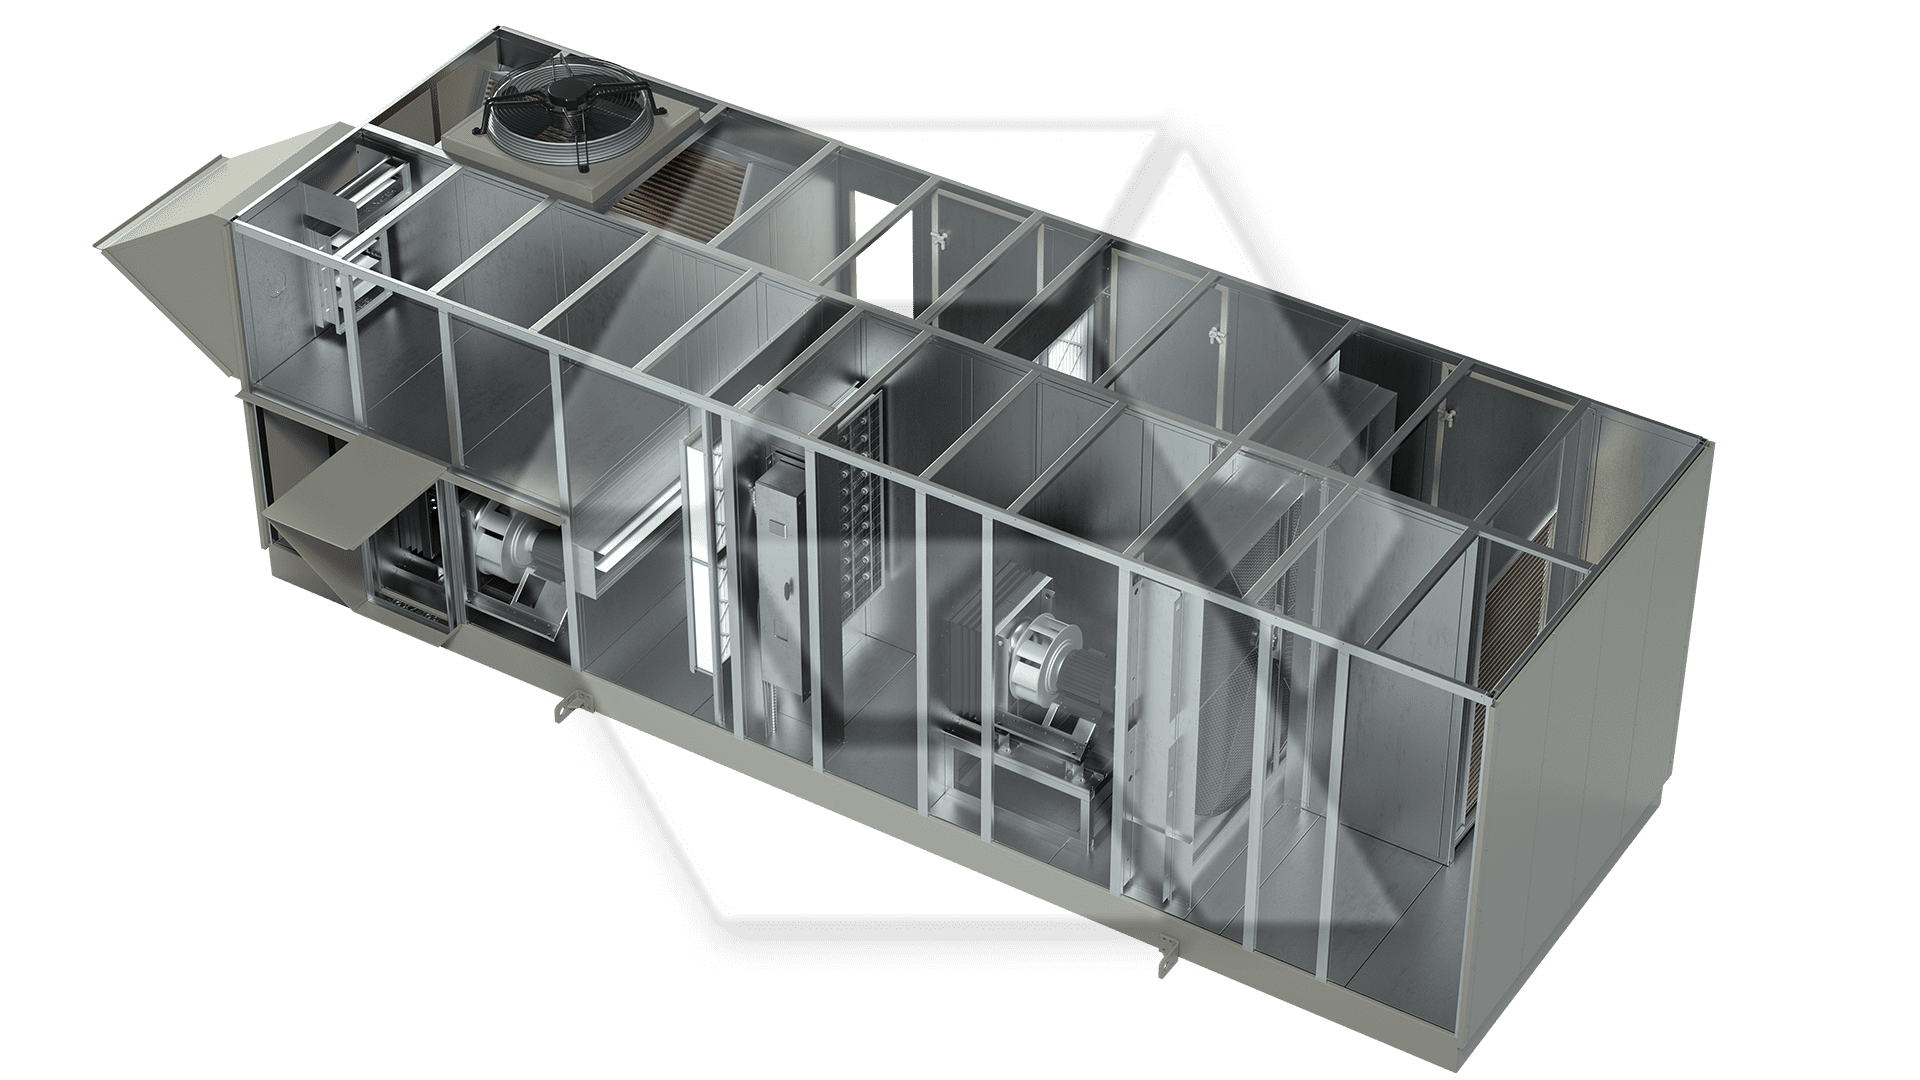 Innovent AHU 8078459-00020 - Dessicant Unit Open View